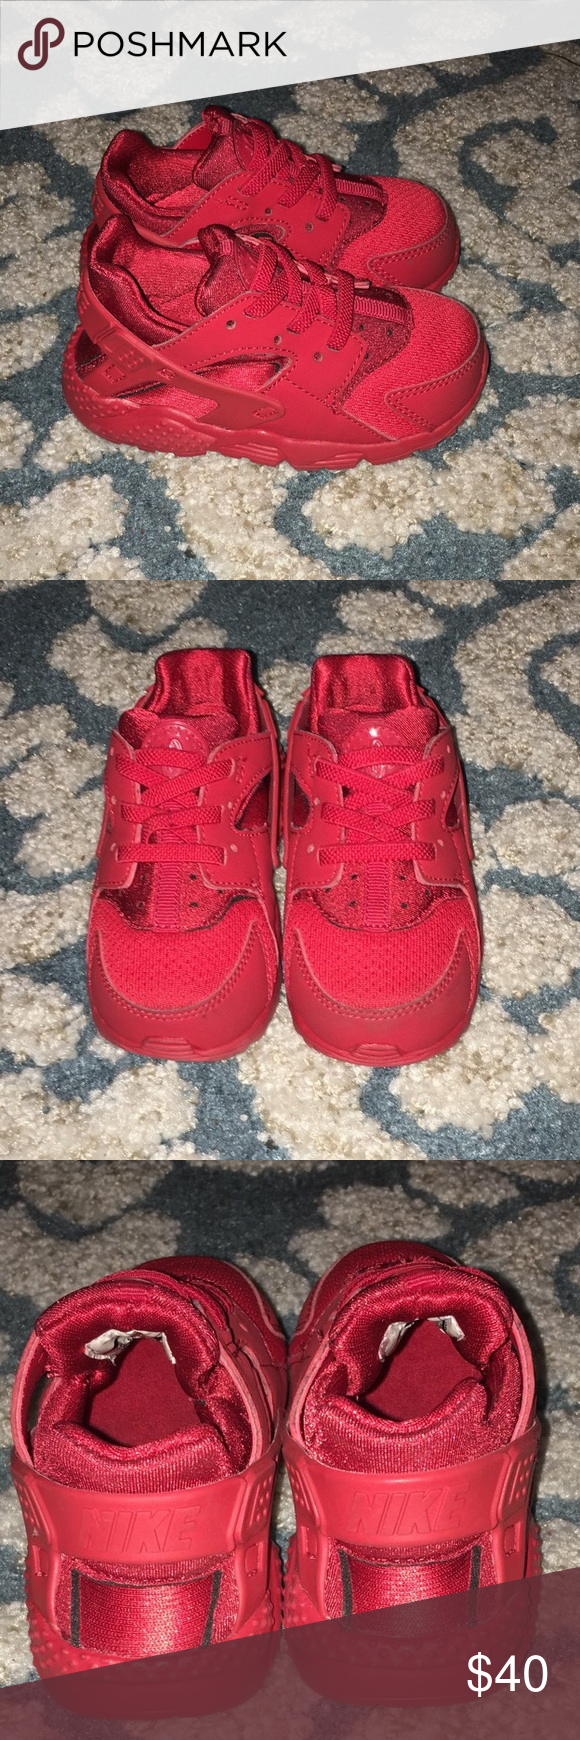 278c4a0ccf University Red Nike Huarache (Toddler) Size: 7C Style: 704950-600 (Very  gently worn, do not have original packaging) Nike Shoes Sneakers